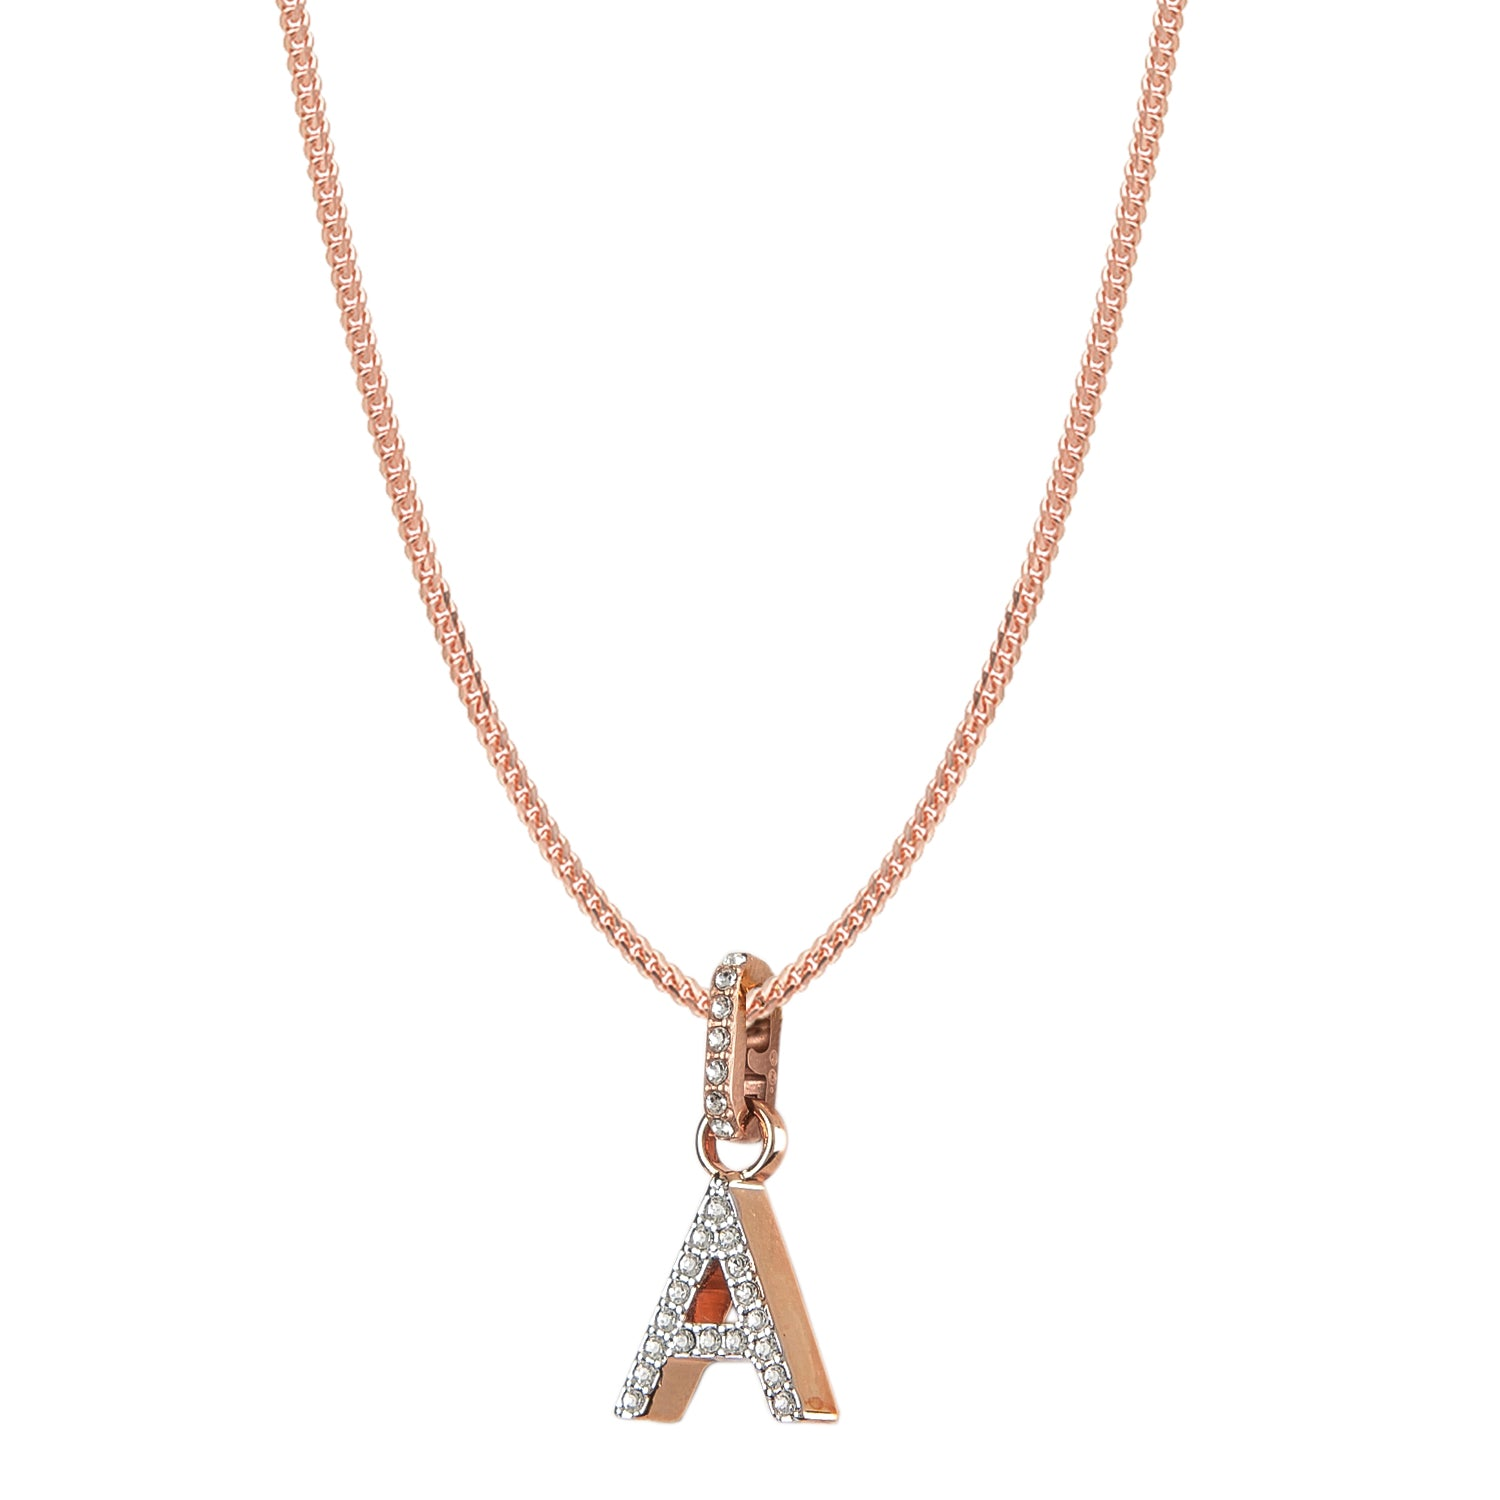 Swarovski Remix Collection A White Charm In Rose-Gold Tone Plated | Shop Luxury Swarovski Charm Online